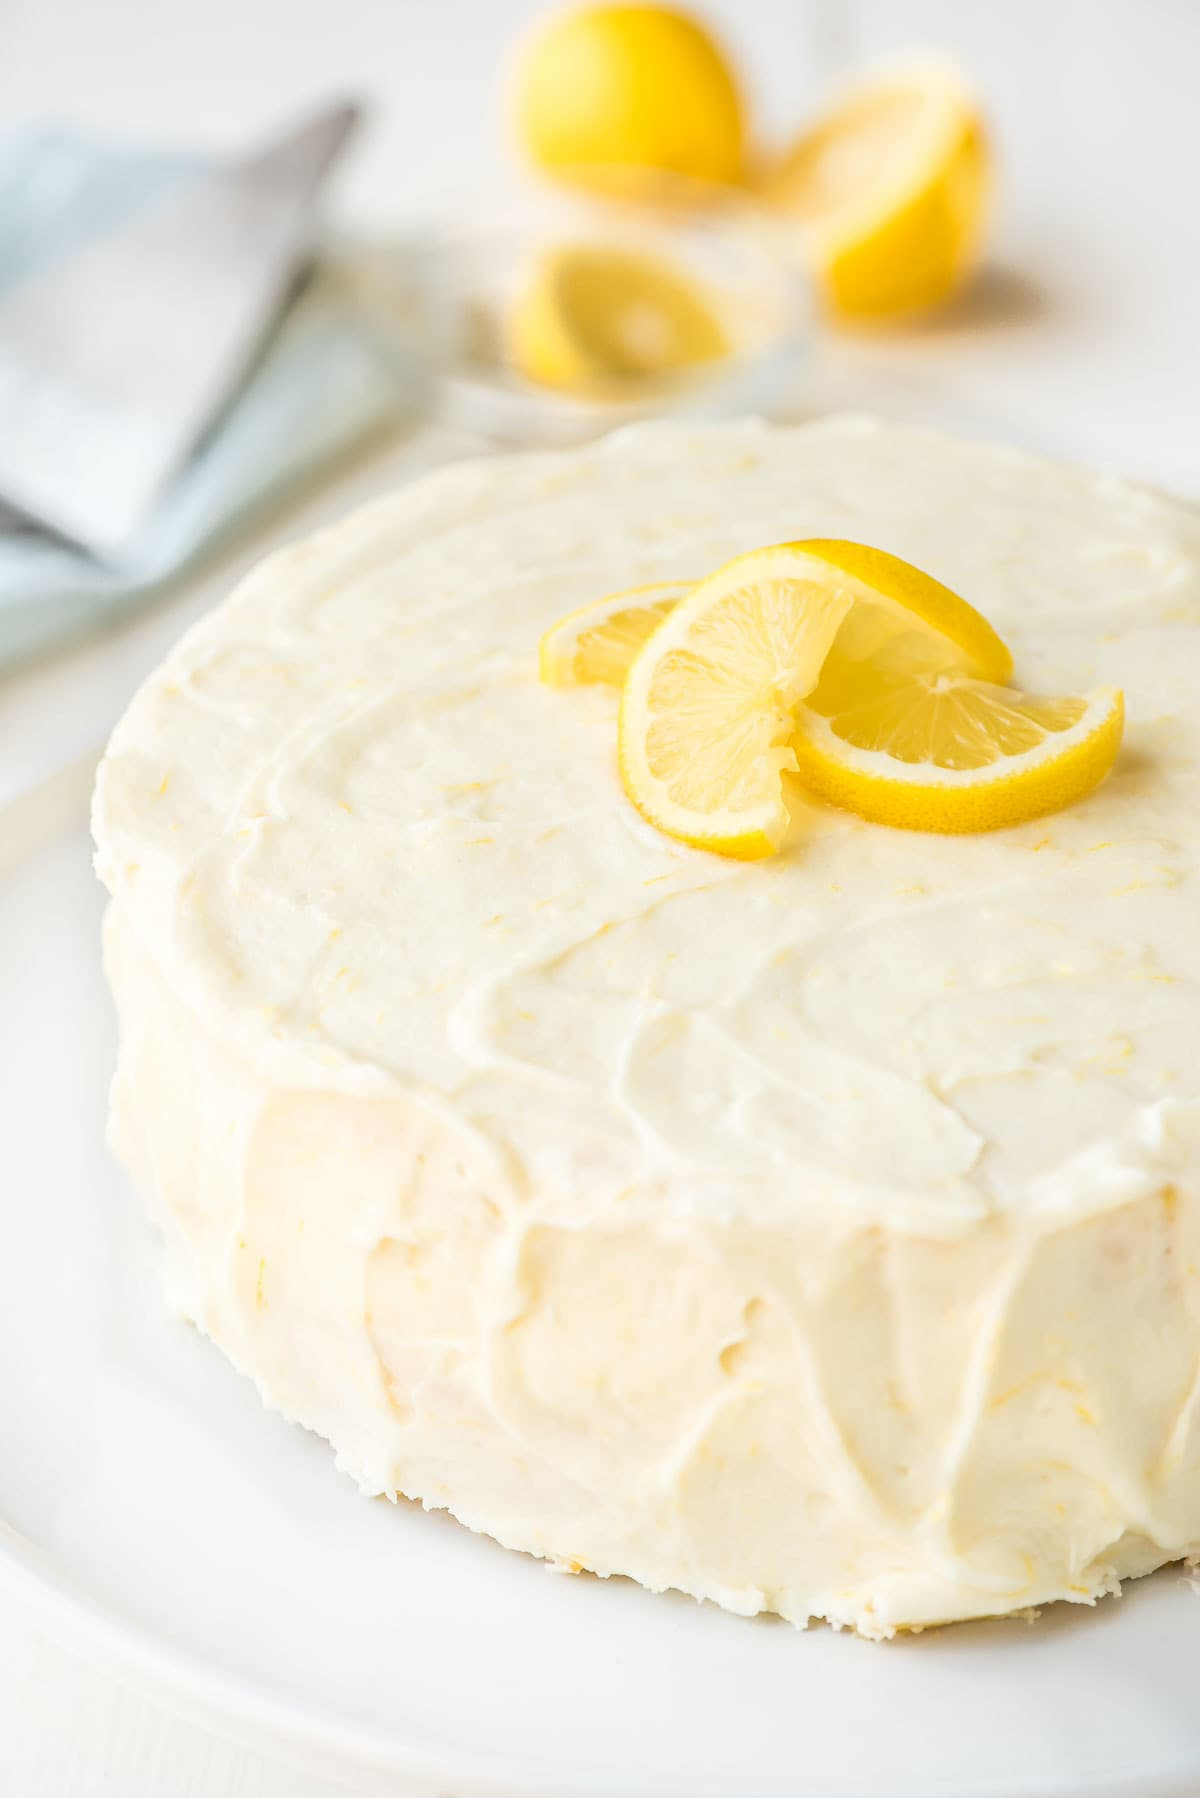 This is the BEST Lemon Layer Cake you will ever eat! Moist, tender, and the batter is so easy to work with too. Topped with a luscious Lemon Cream Cheese Frosting. @wellplated